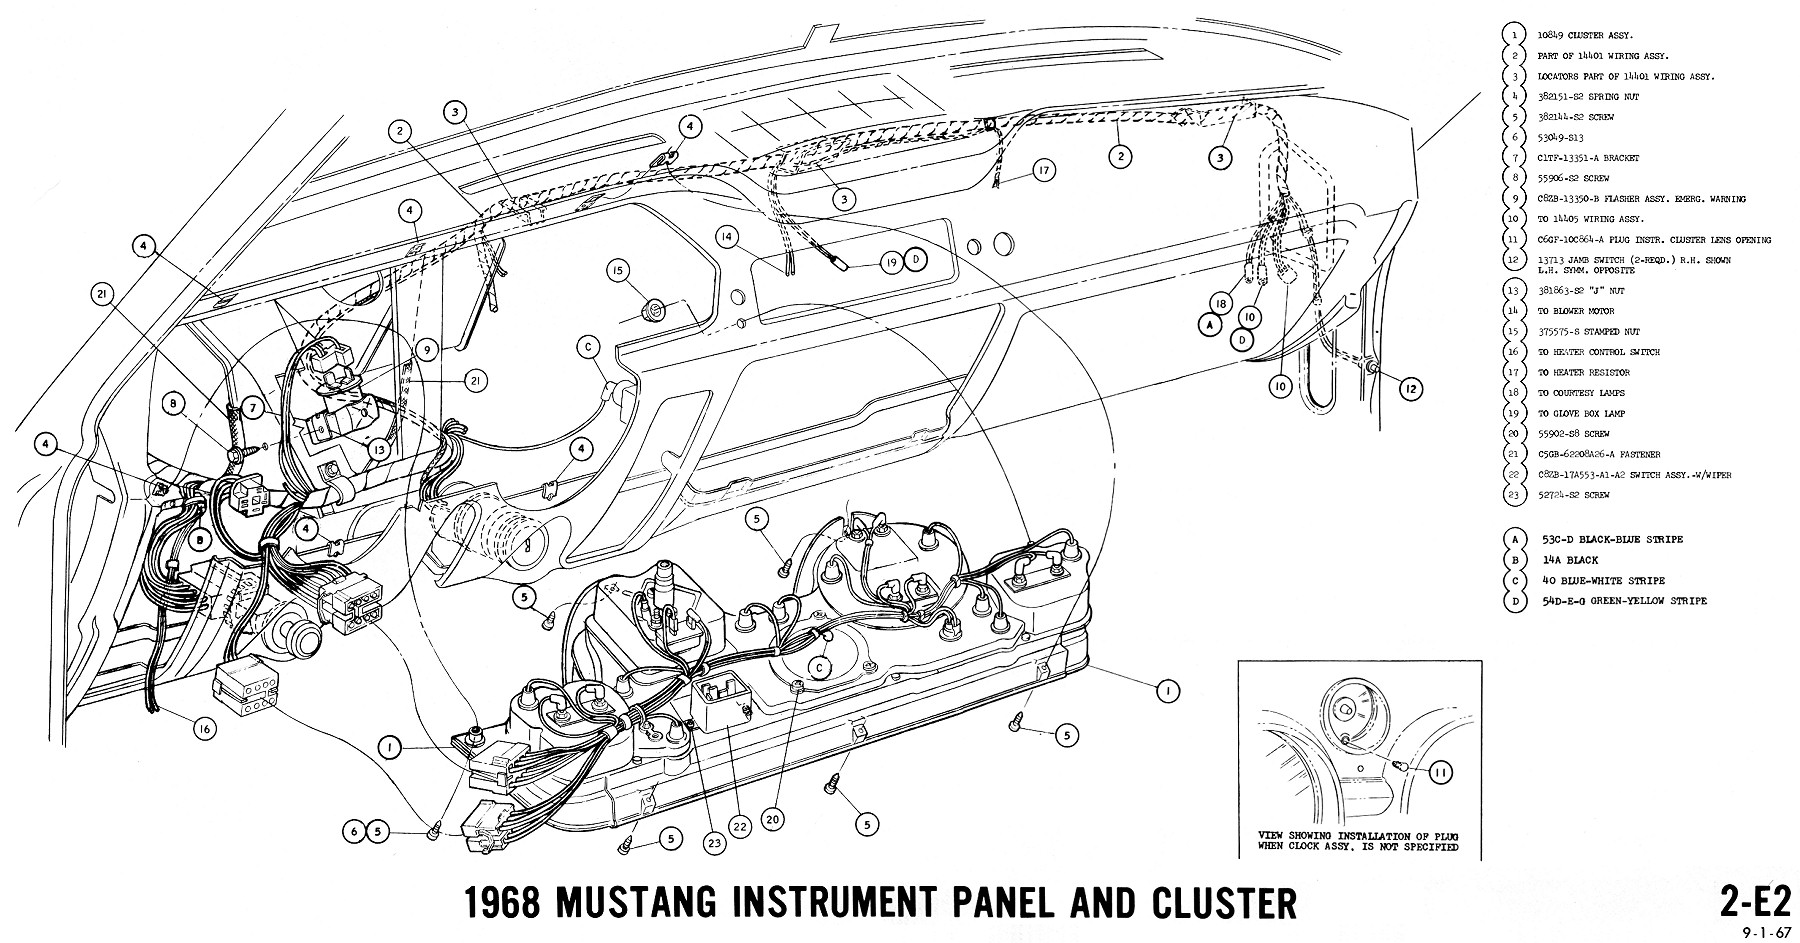 Wiring Diagram For 1968 Mustang Gt500 Library 1965 Horn Schematic Diagrams Evolving Software Rh Peterfranza Com